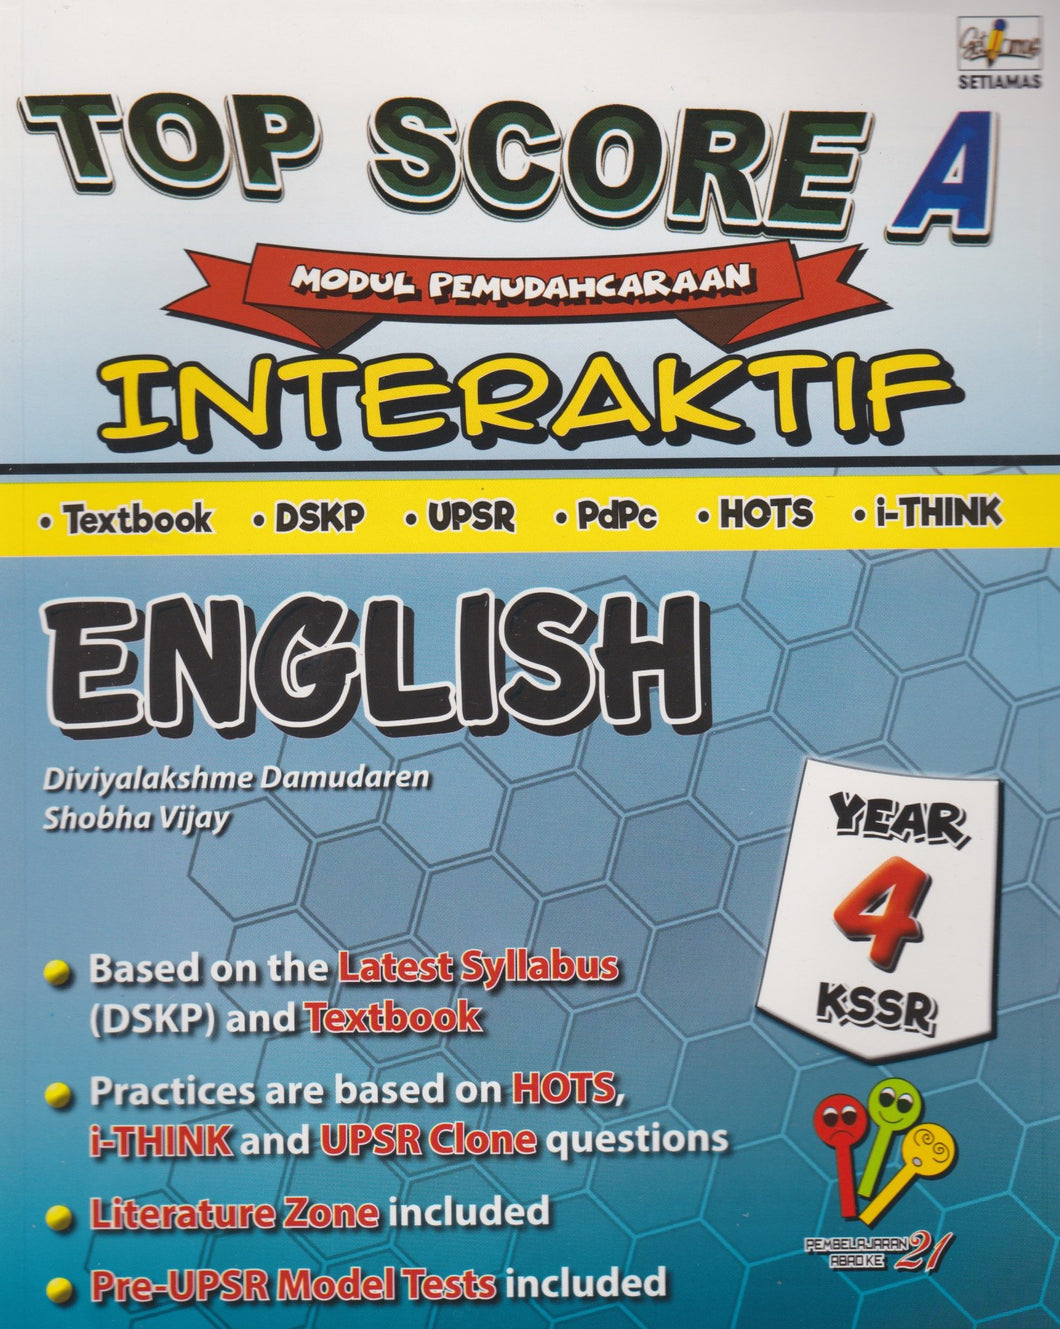 Setiamas-Top Score A Interaktif: English Year 4-9789672094081-BukuDBP.com